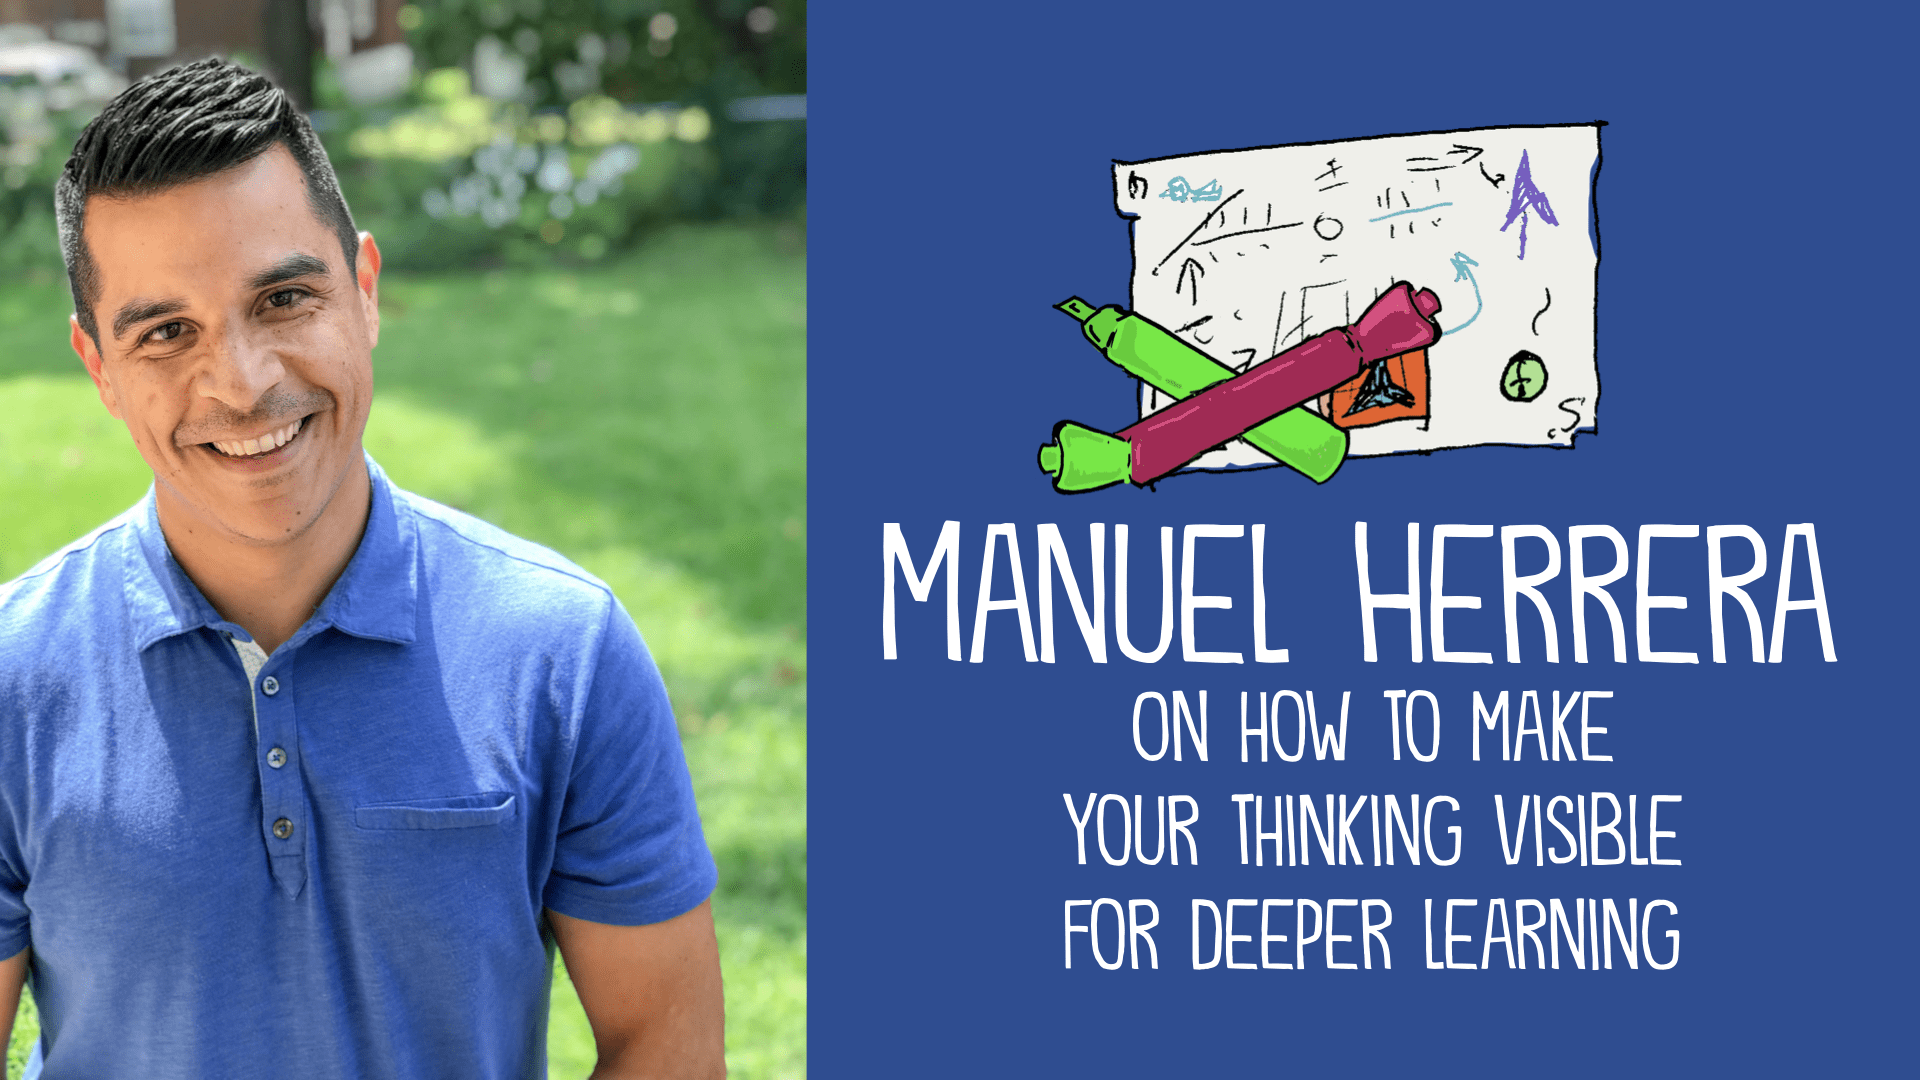 Manuel Herrera on How to Use Visual Thinking for Deeper Learning